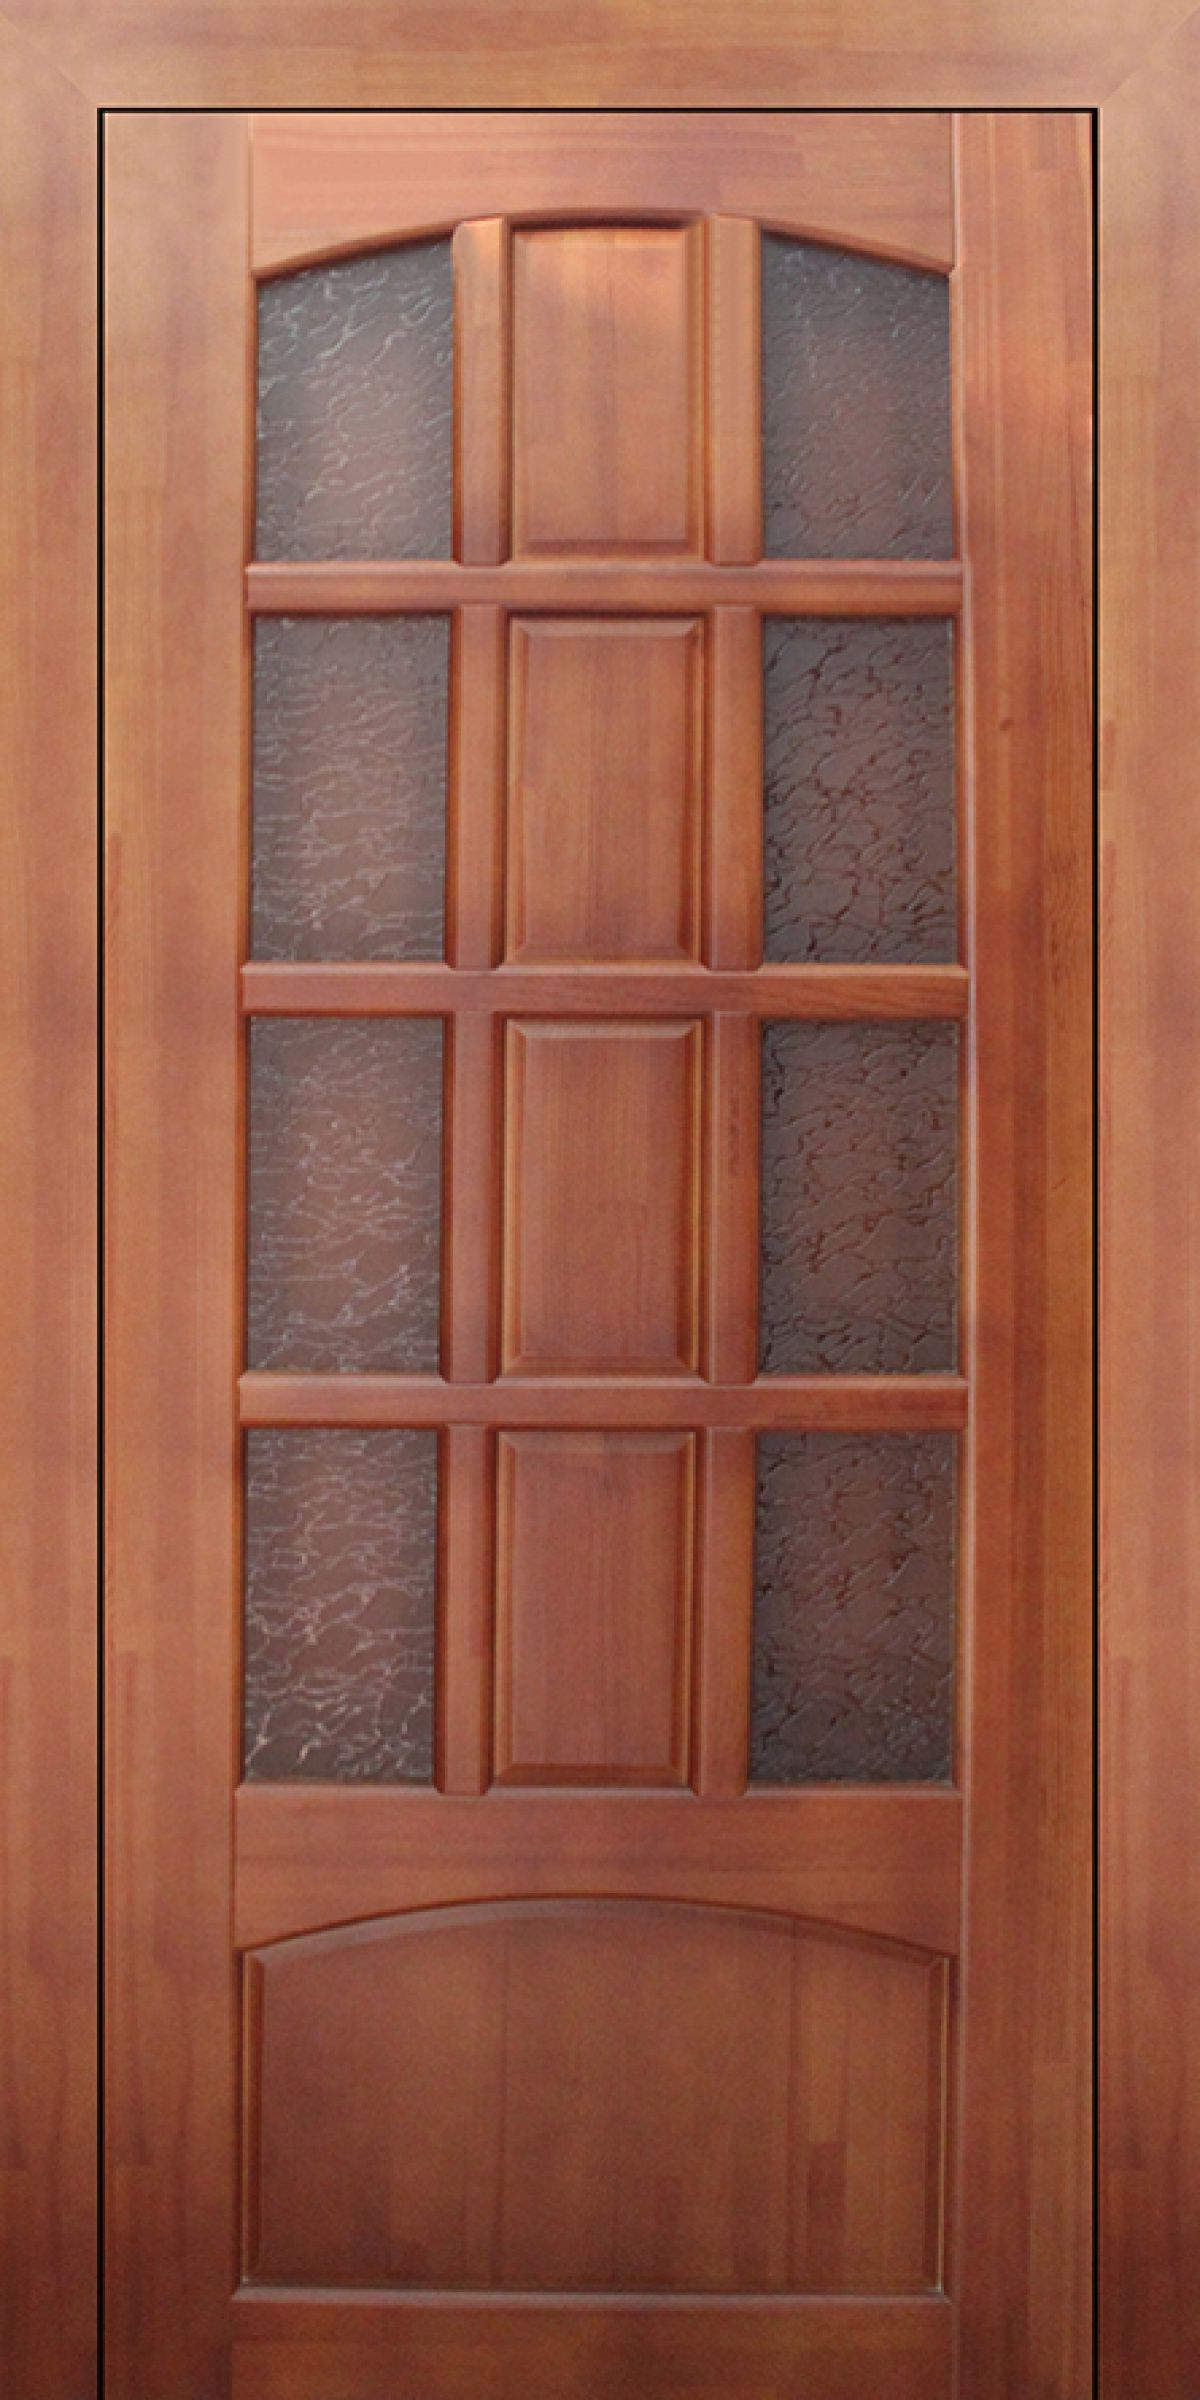 Large wooden pocket interior doors and blue walls in the room for Wood door with glass